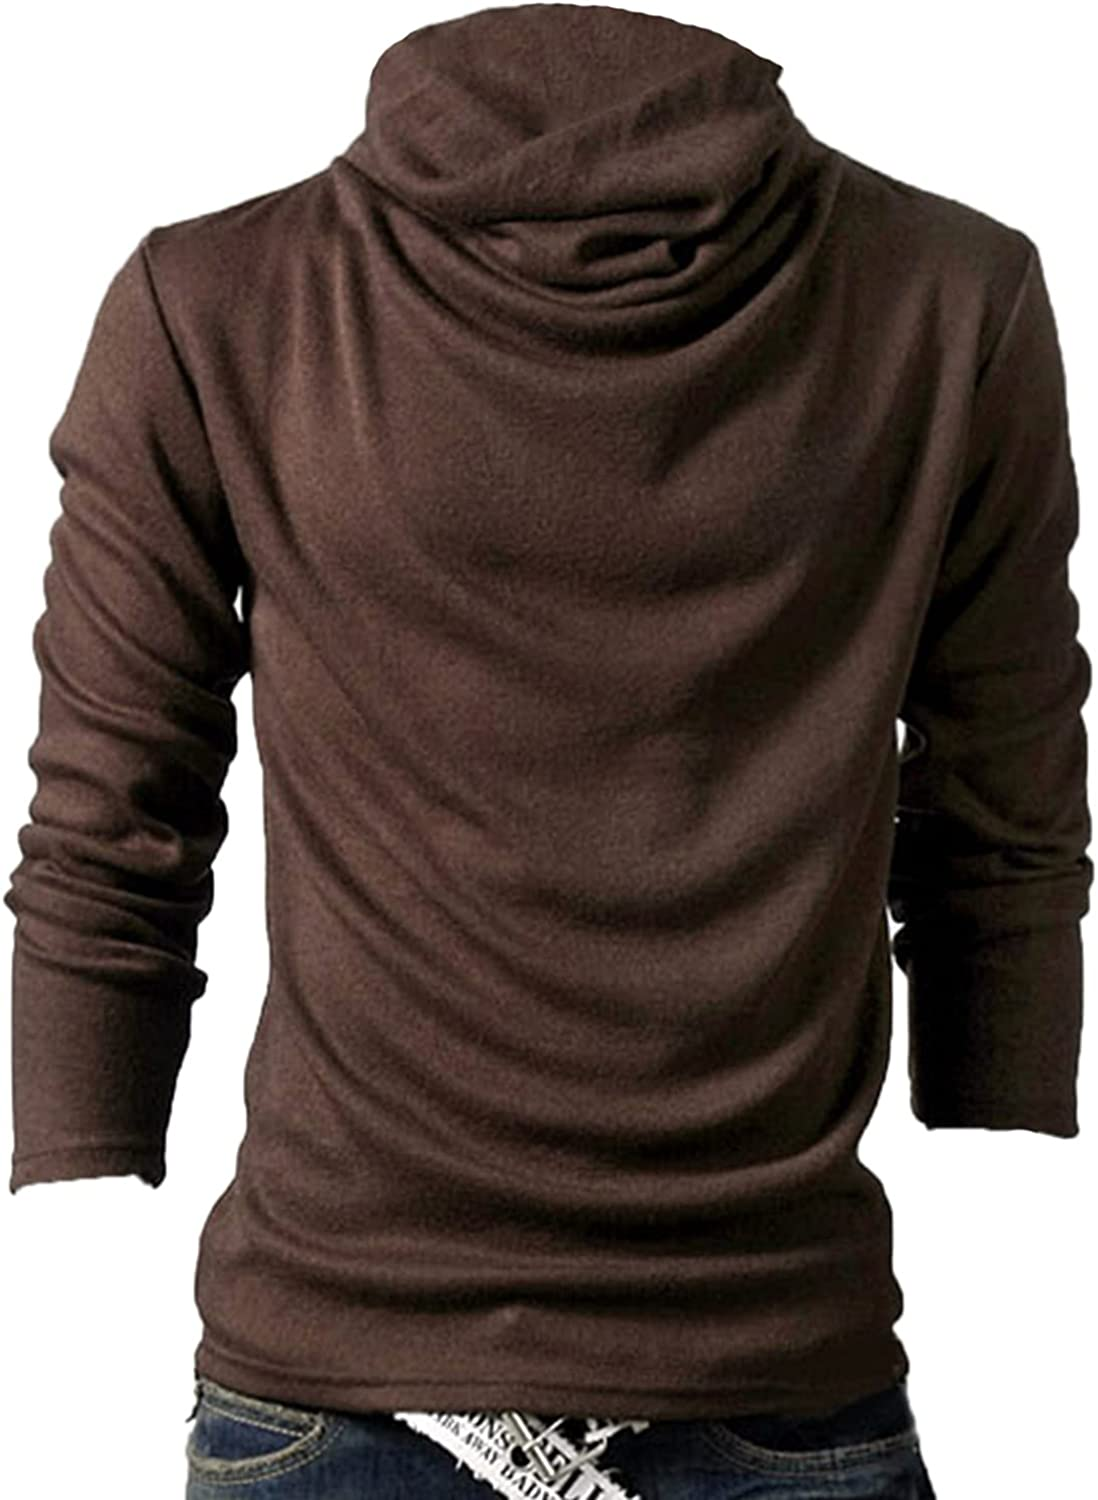 Suncolour Mens Casual Turtleneck Basic Tops Men Slim Fit Knitted Thermal Pullover Tshirts